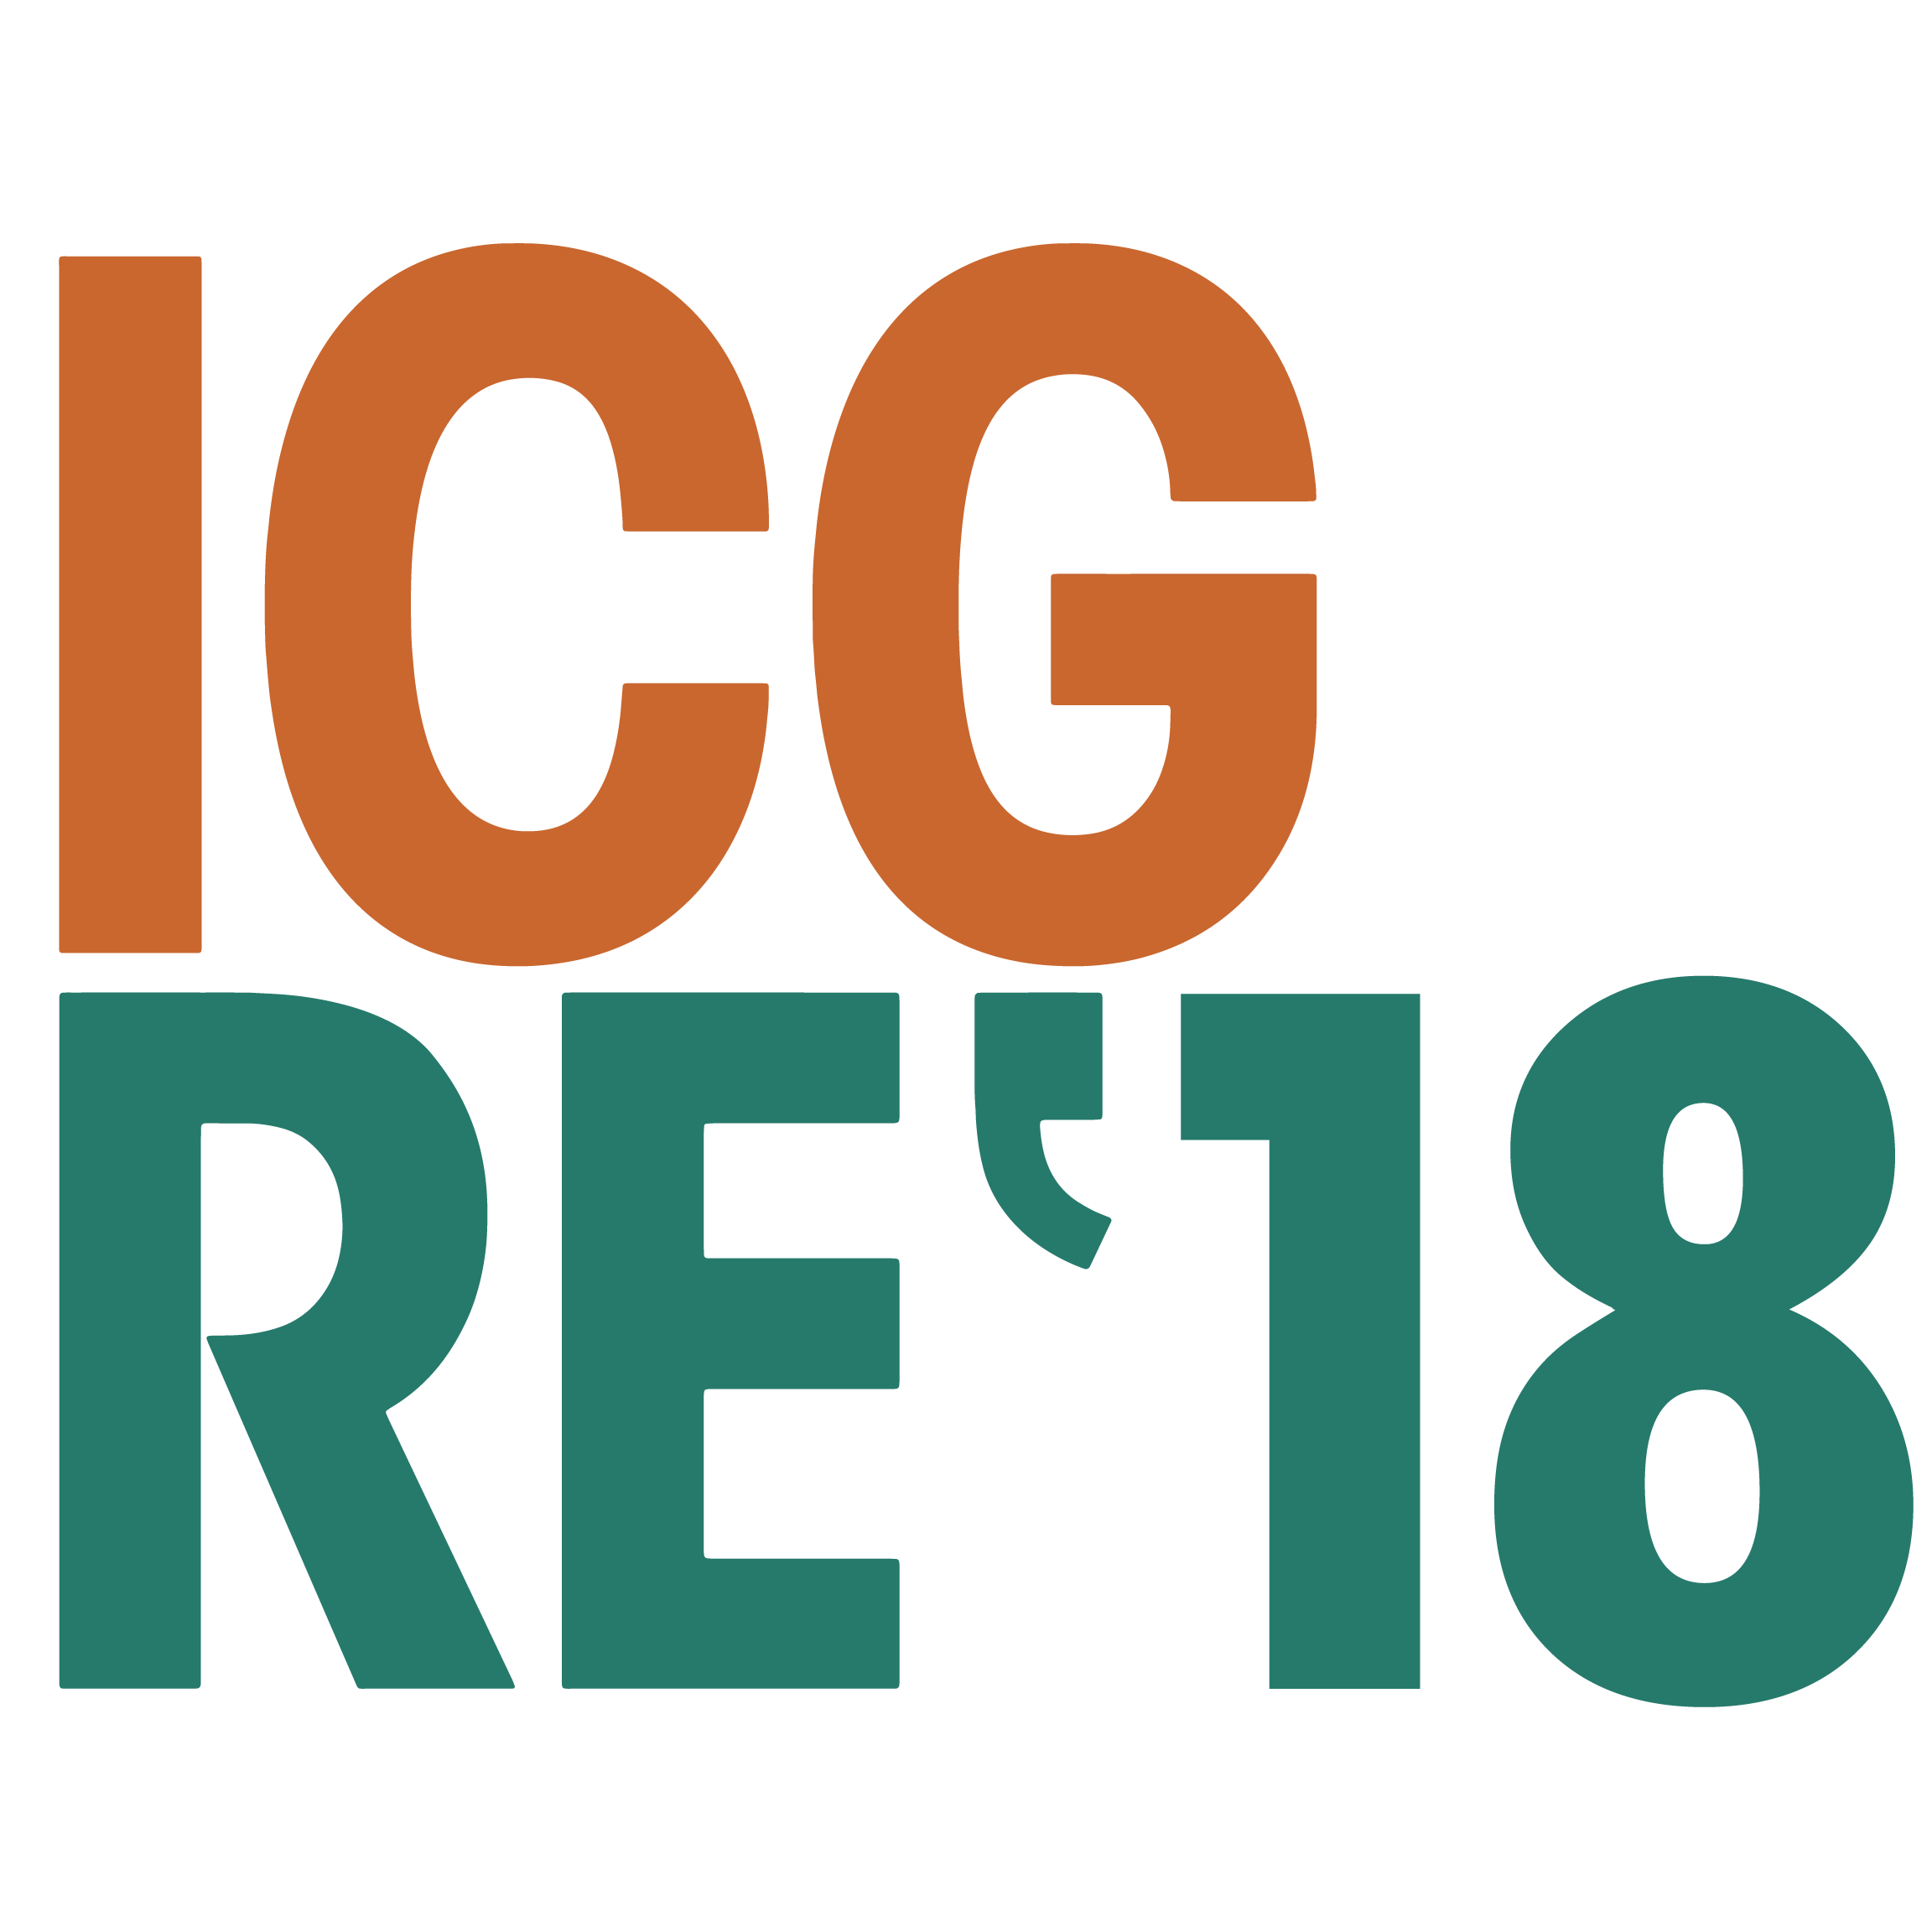 Green Day clipart environmental engineering (ICGRE'18) on Research CSEE'18 3rd